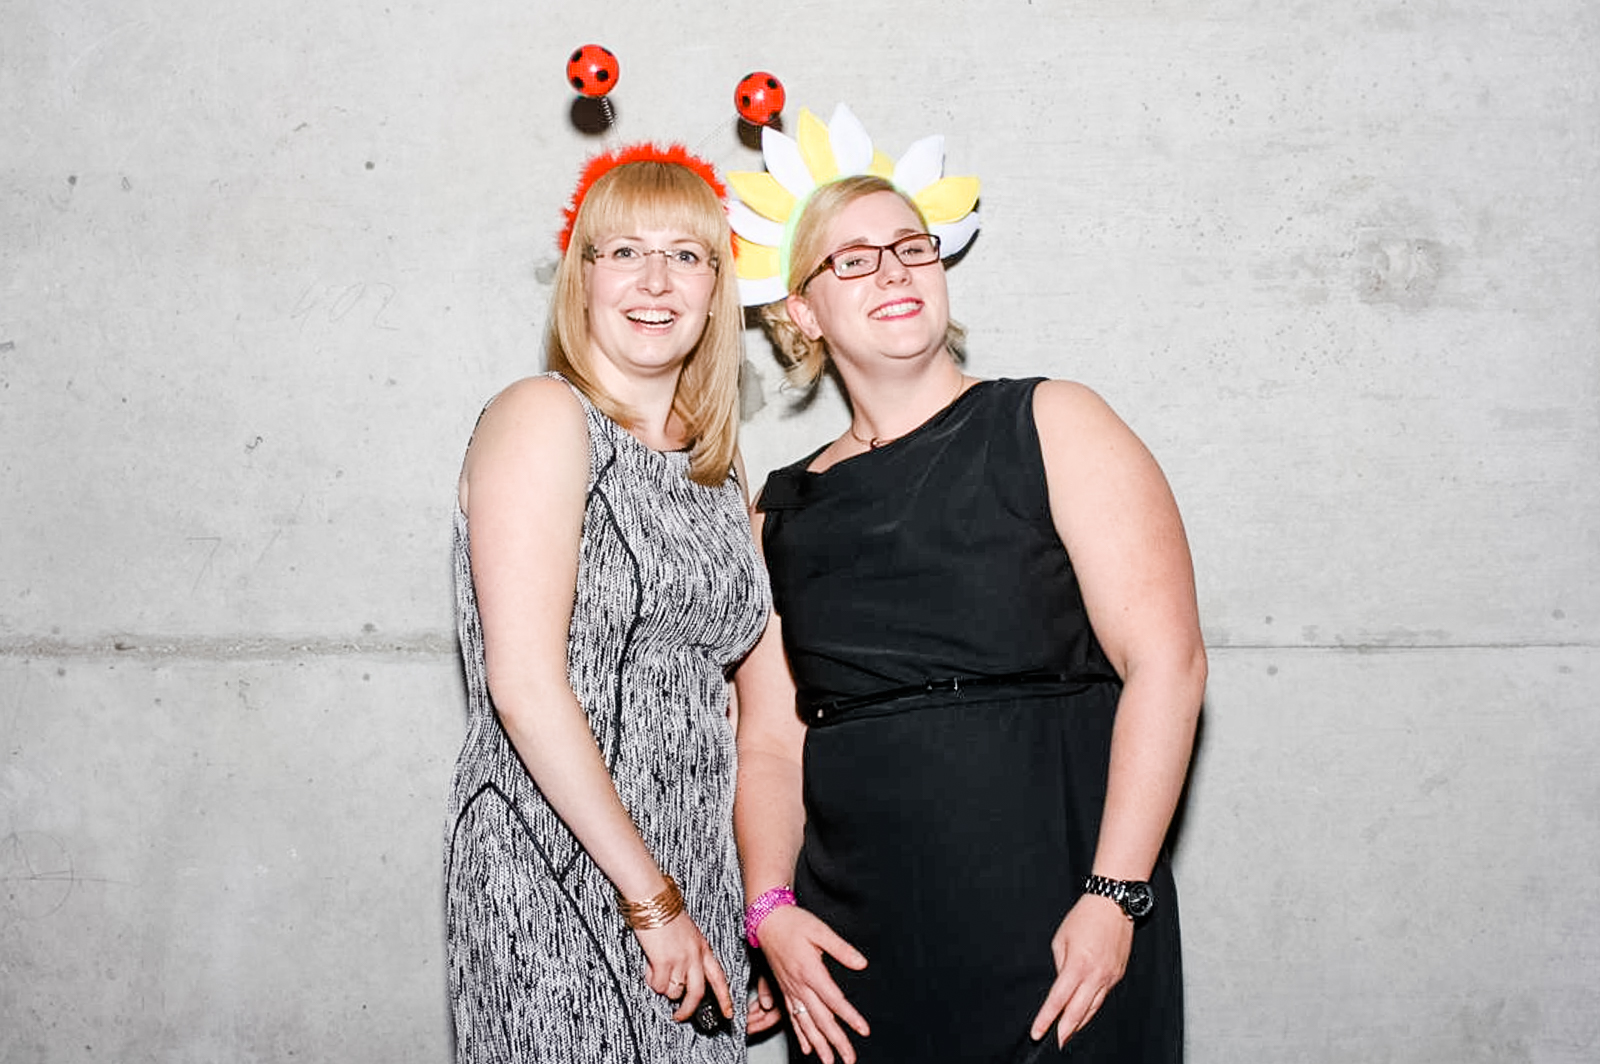 Monstergraphie_Photobooth_Zeche_Zollverein-5.jpg?fit=1600%2C1064